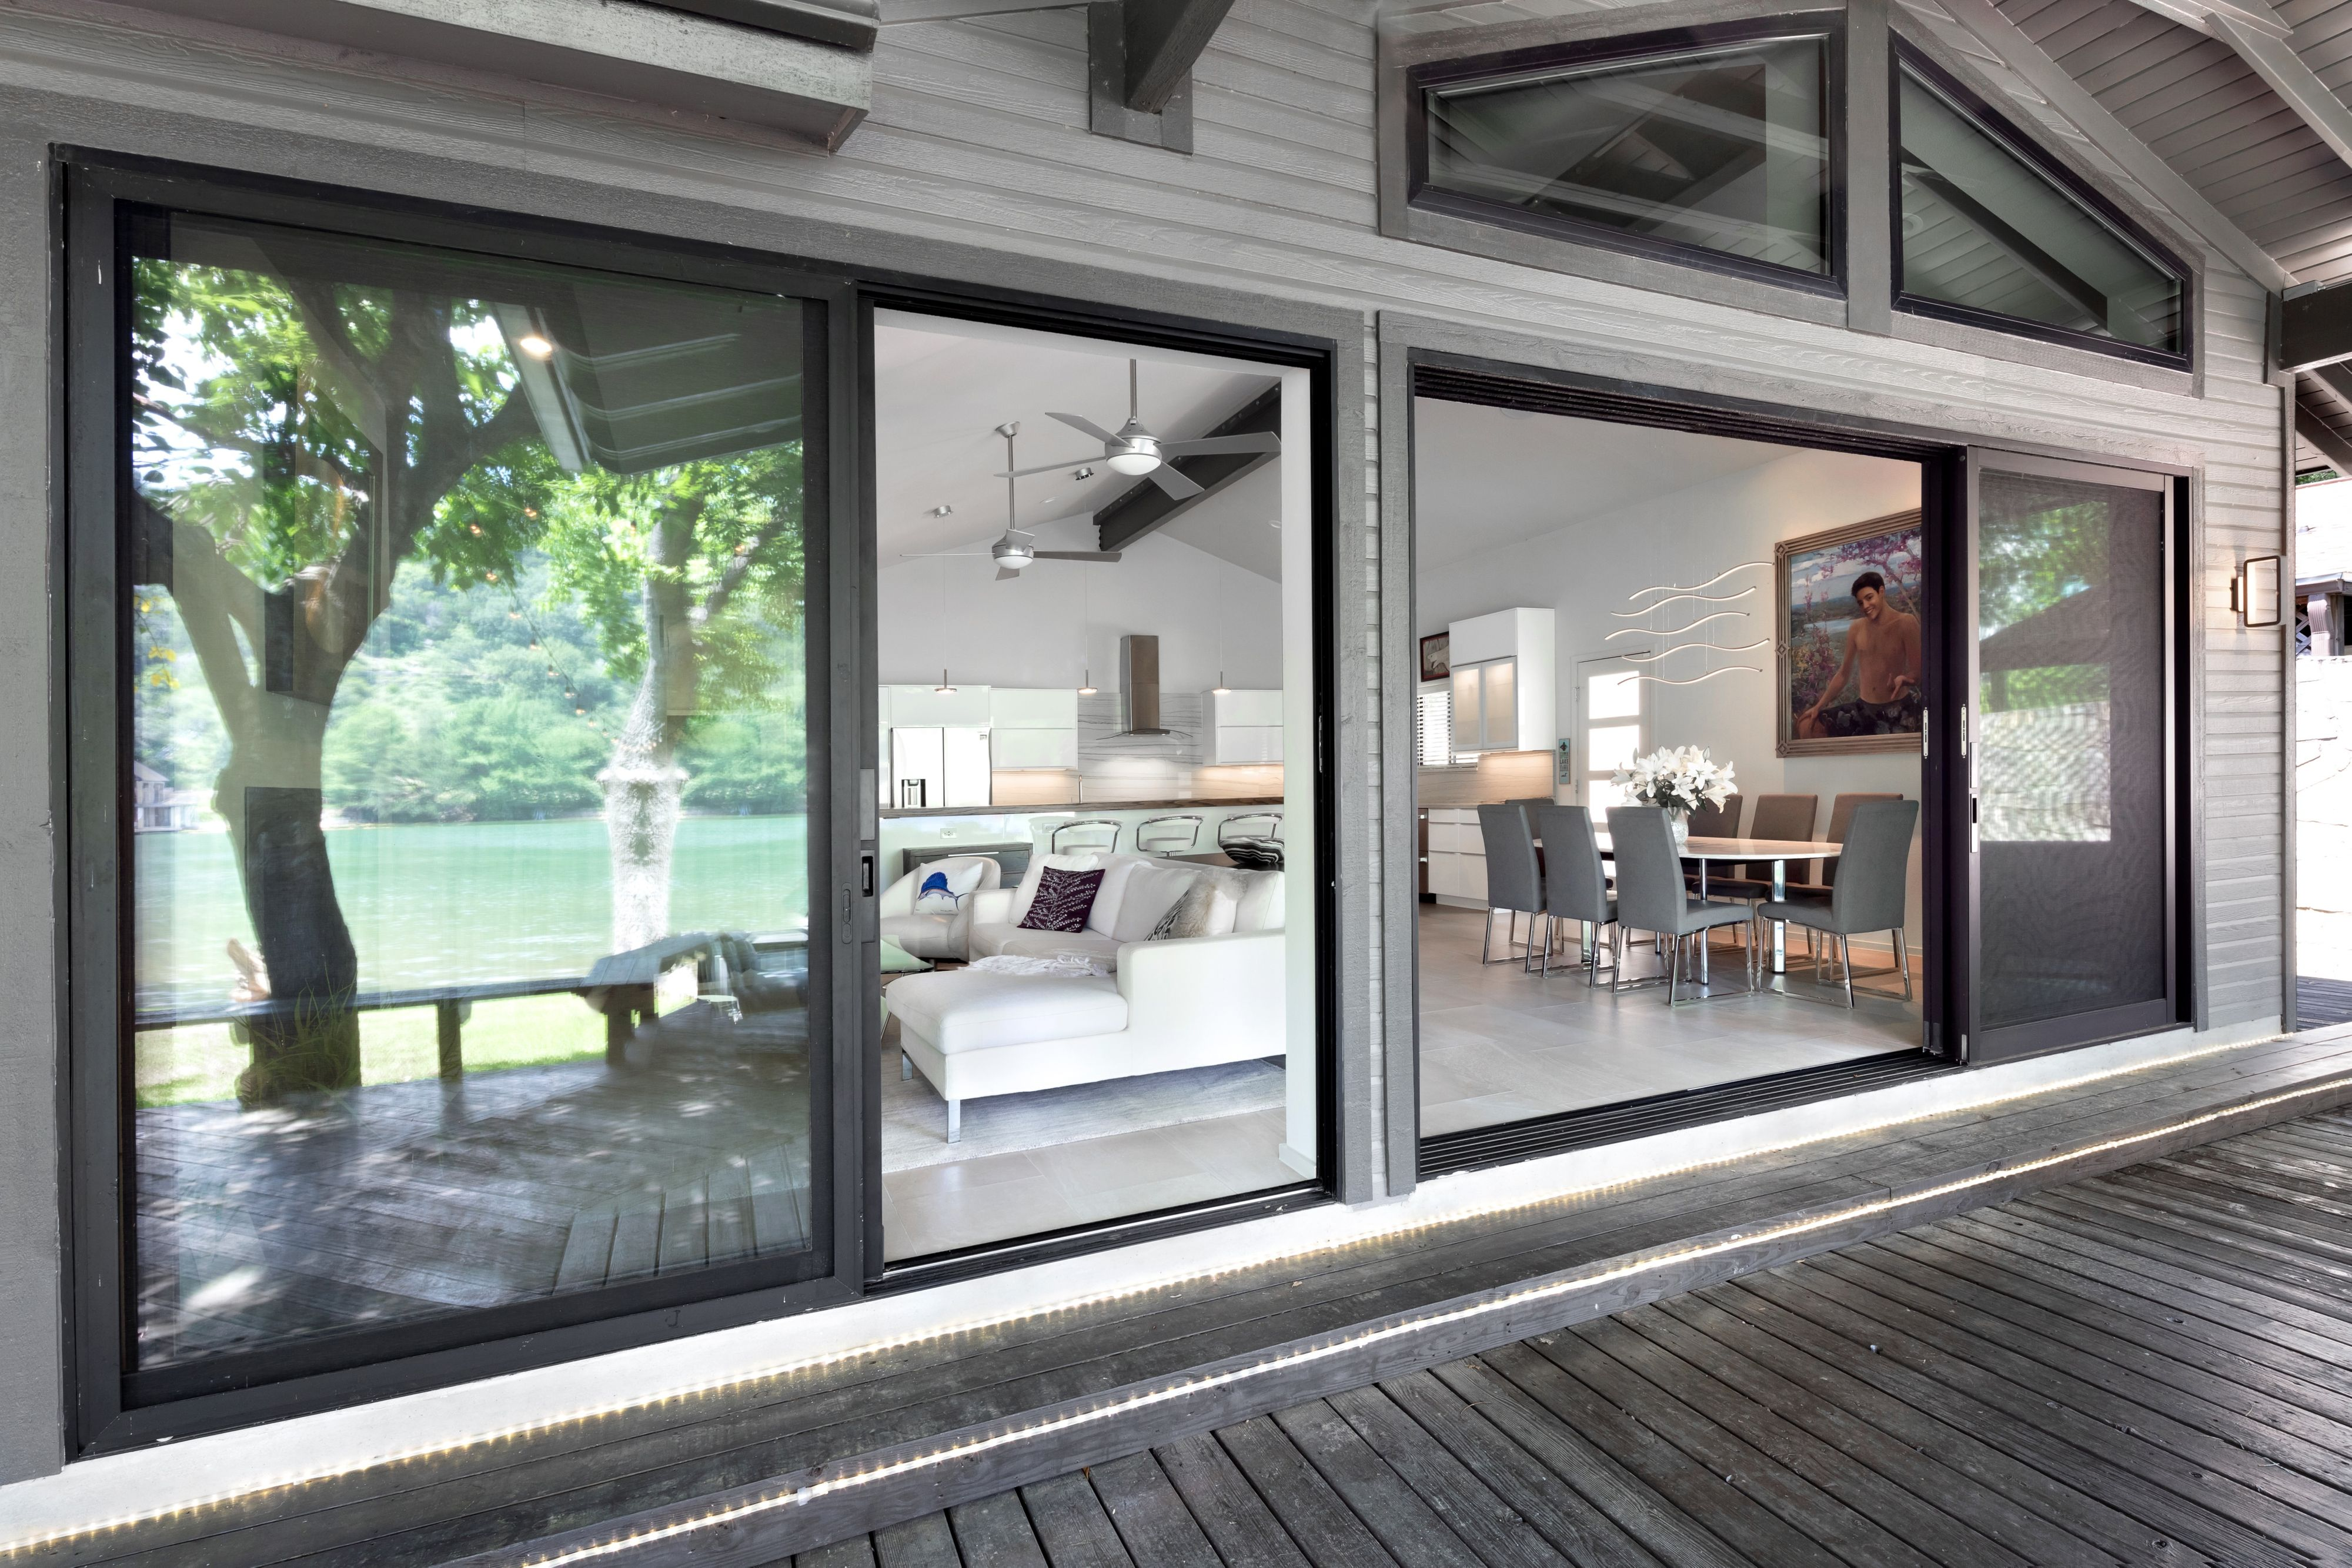 Extra large sliding doors let the summer breeze in